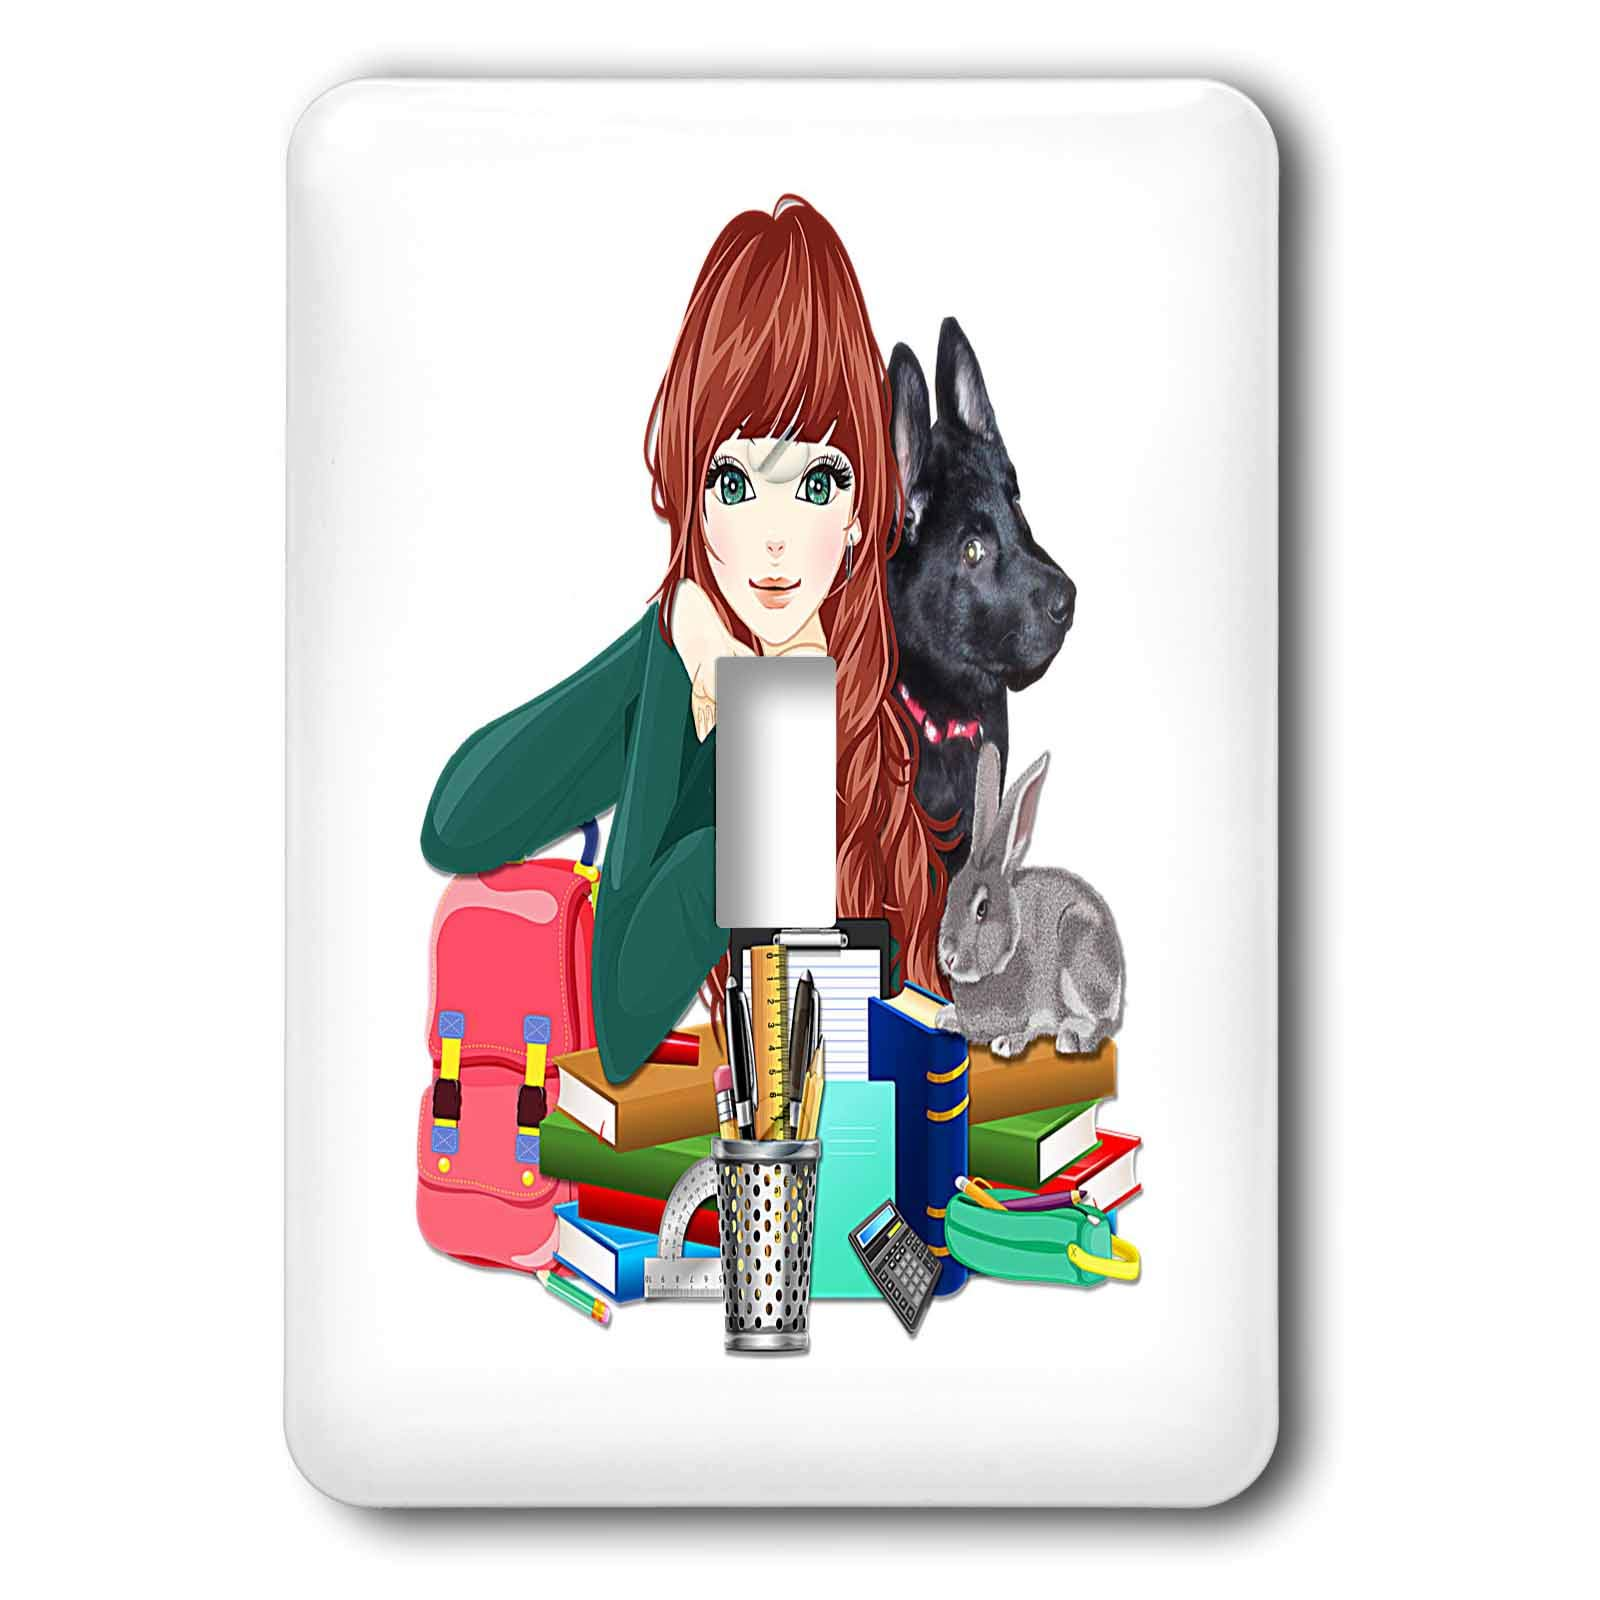 3dRose Sandy Mertens Dog Designs - School Study Buddies Furry Friends and Girl, 3drsmm - Light Switch Covers - single toggle switch (lsp_295175_1)